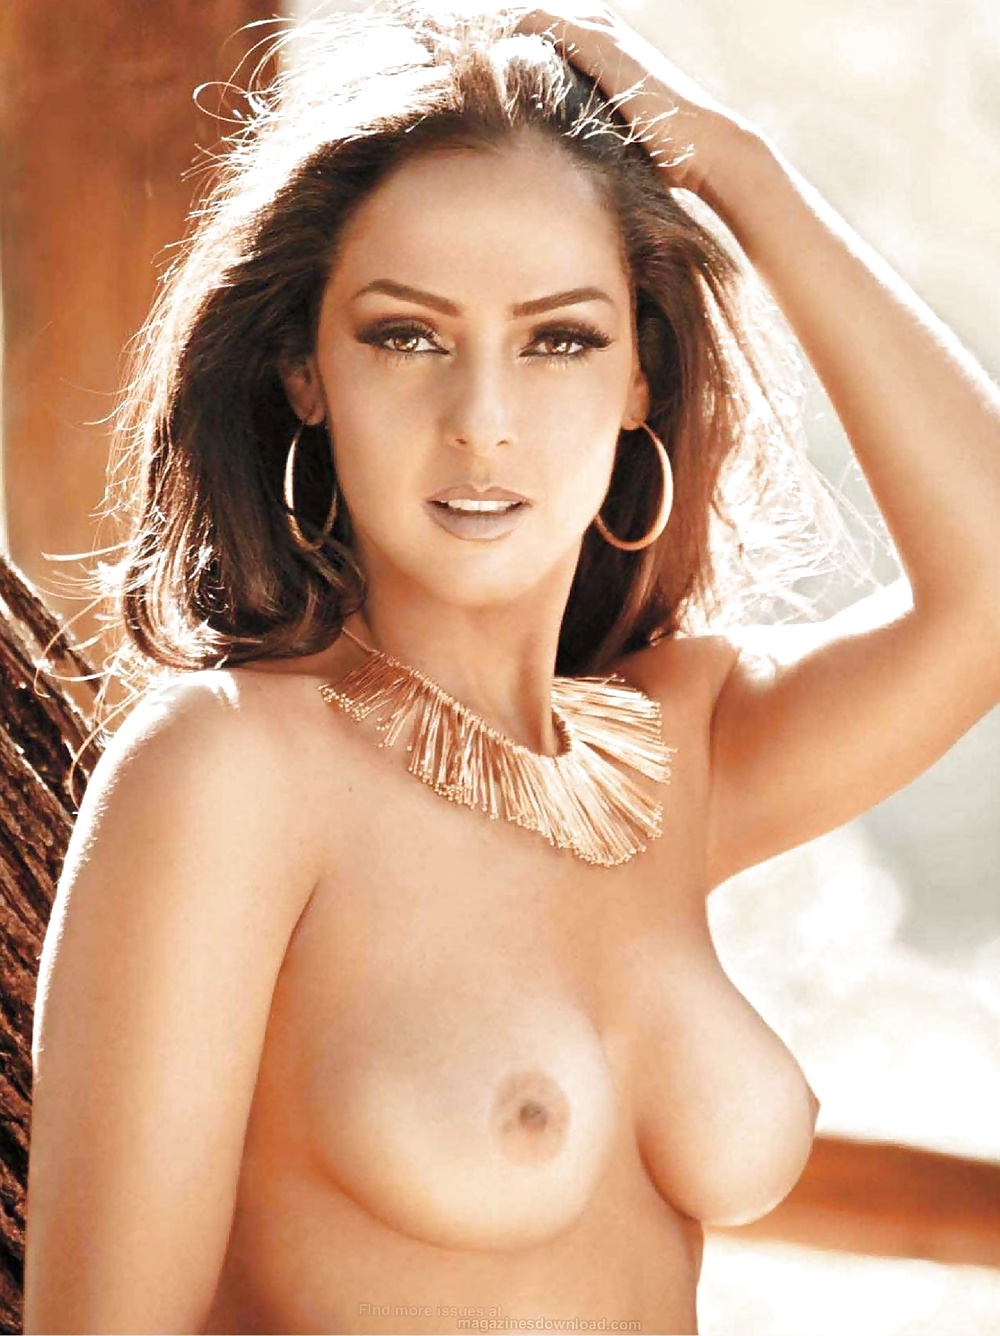 naked-mexican-celebrities-foto-porno-dive